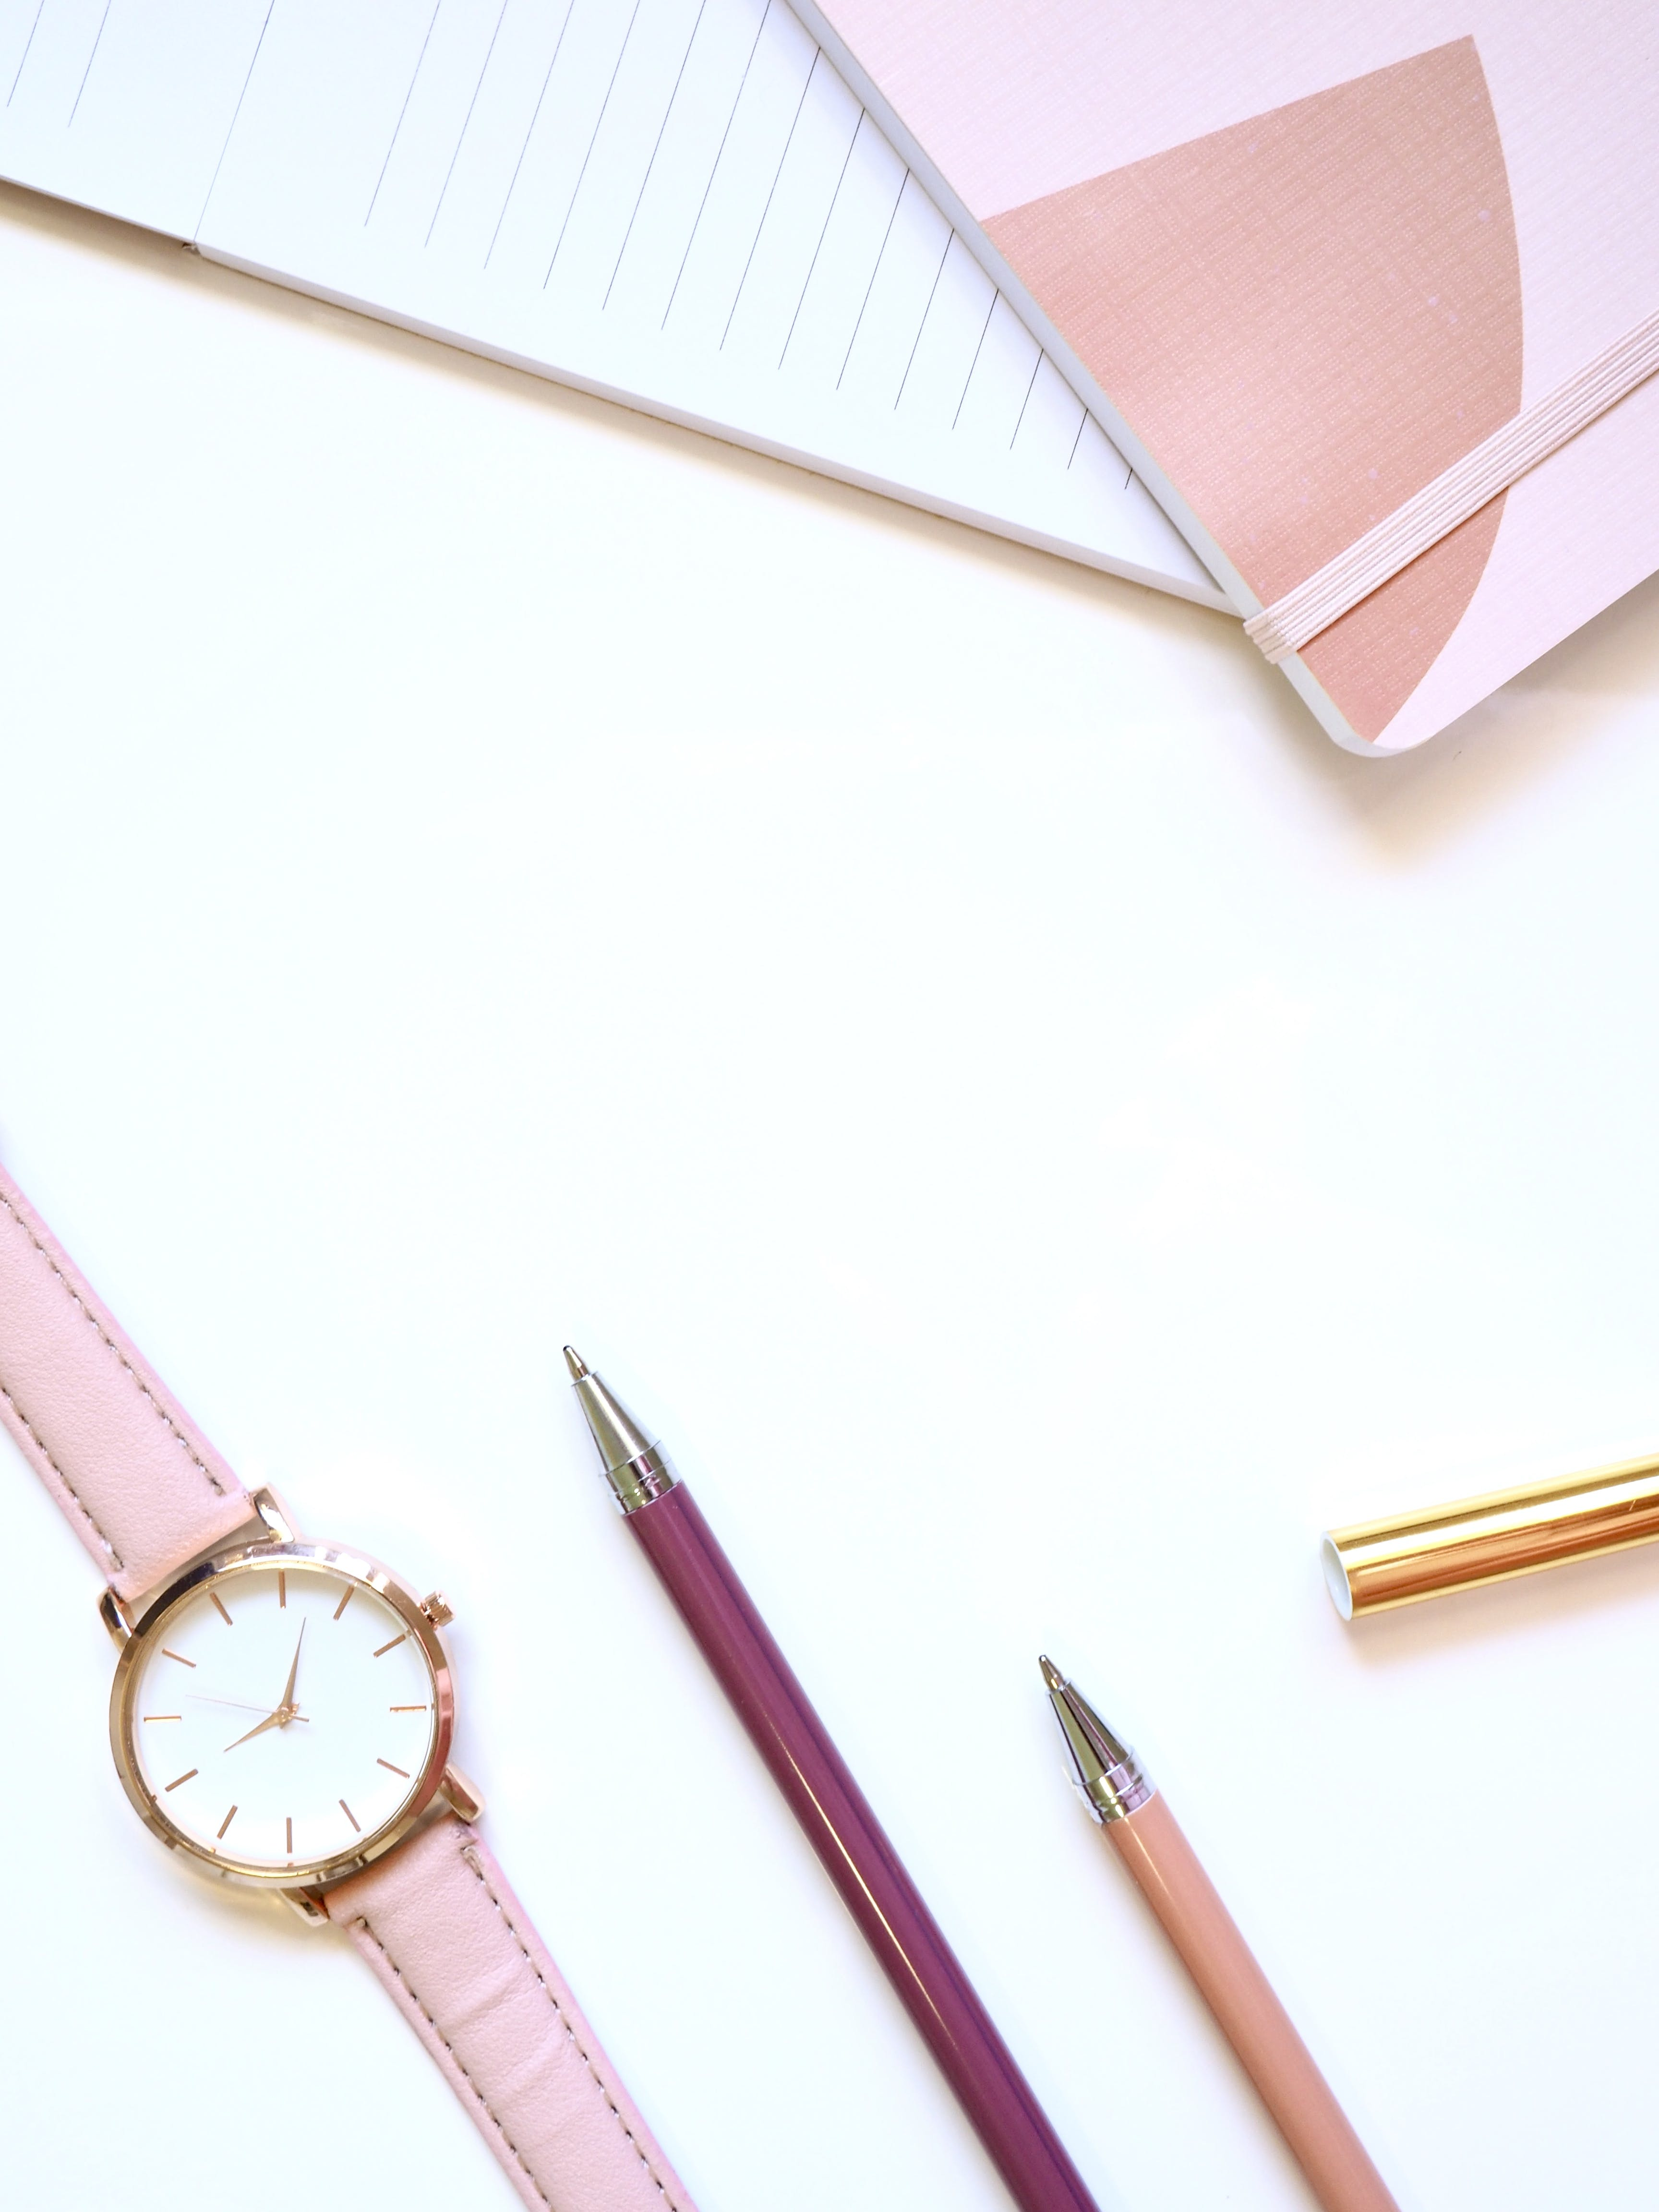 Free stock photo of notebook, wristwatch, pens, pink